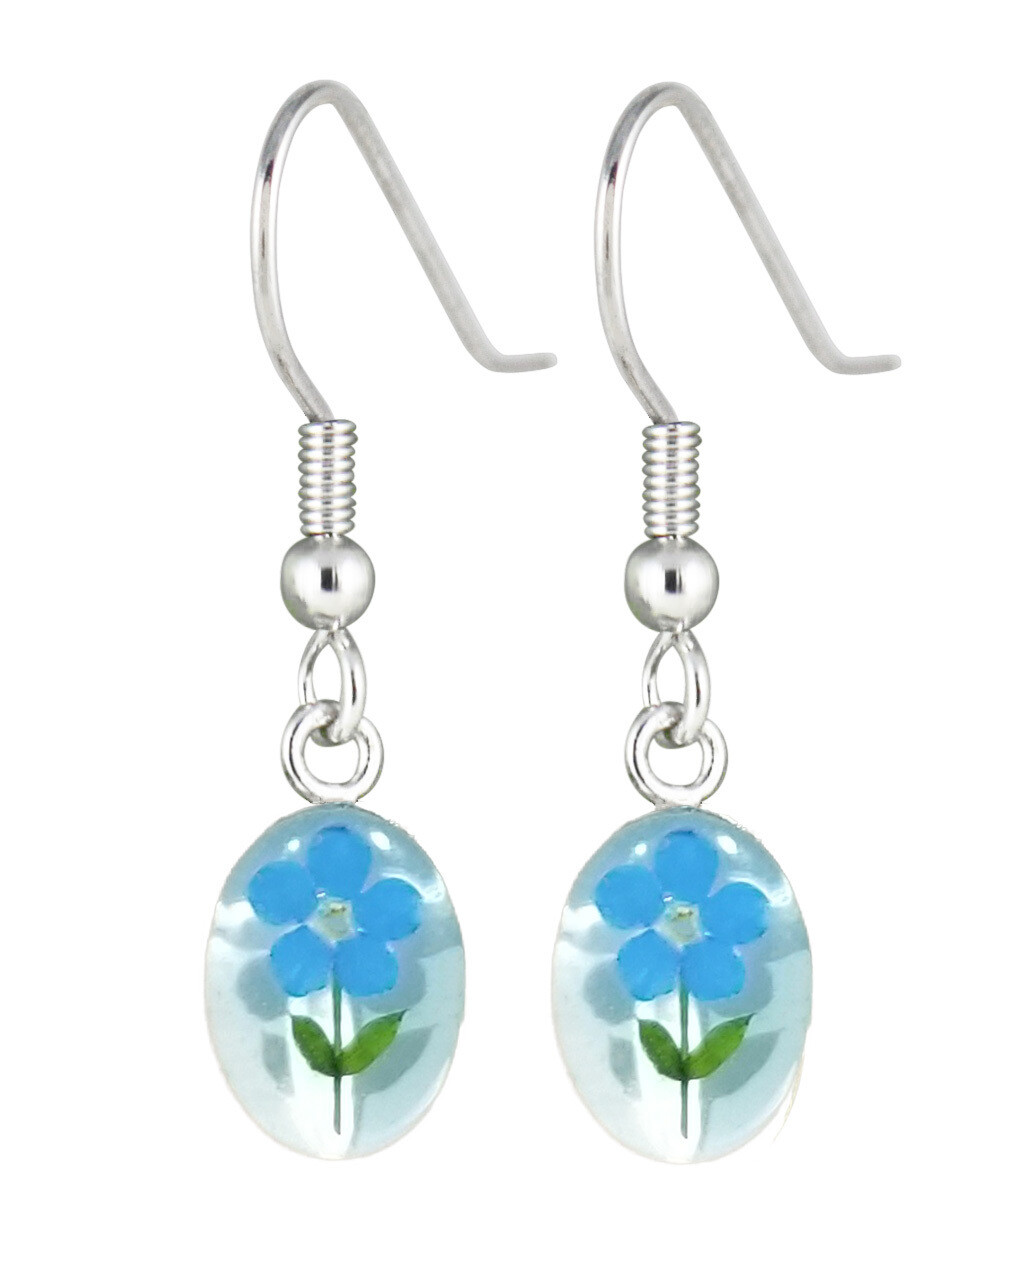 Real Forget-Me-Not, Oval Earrings, White Background.